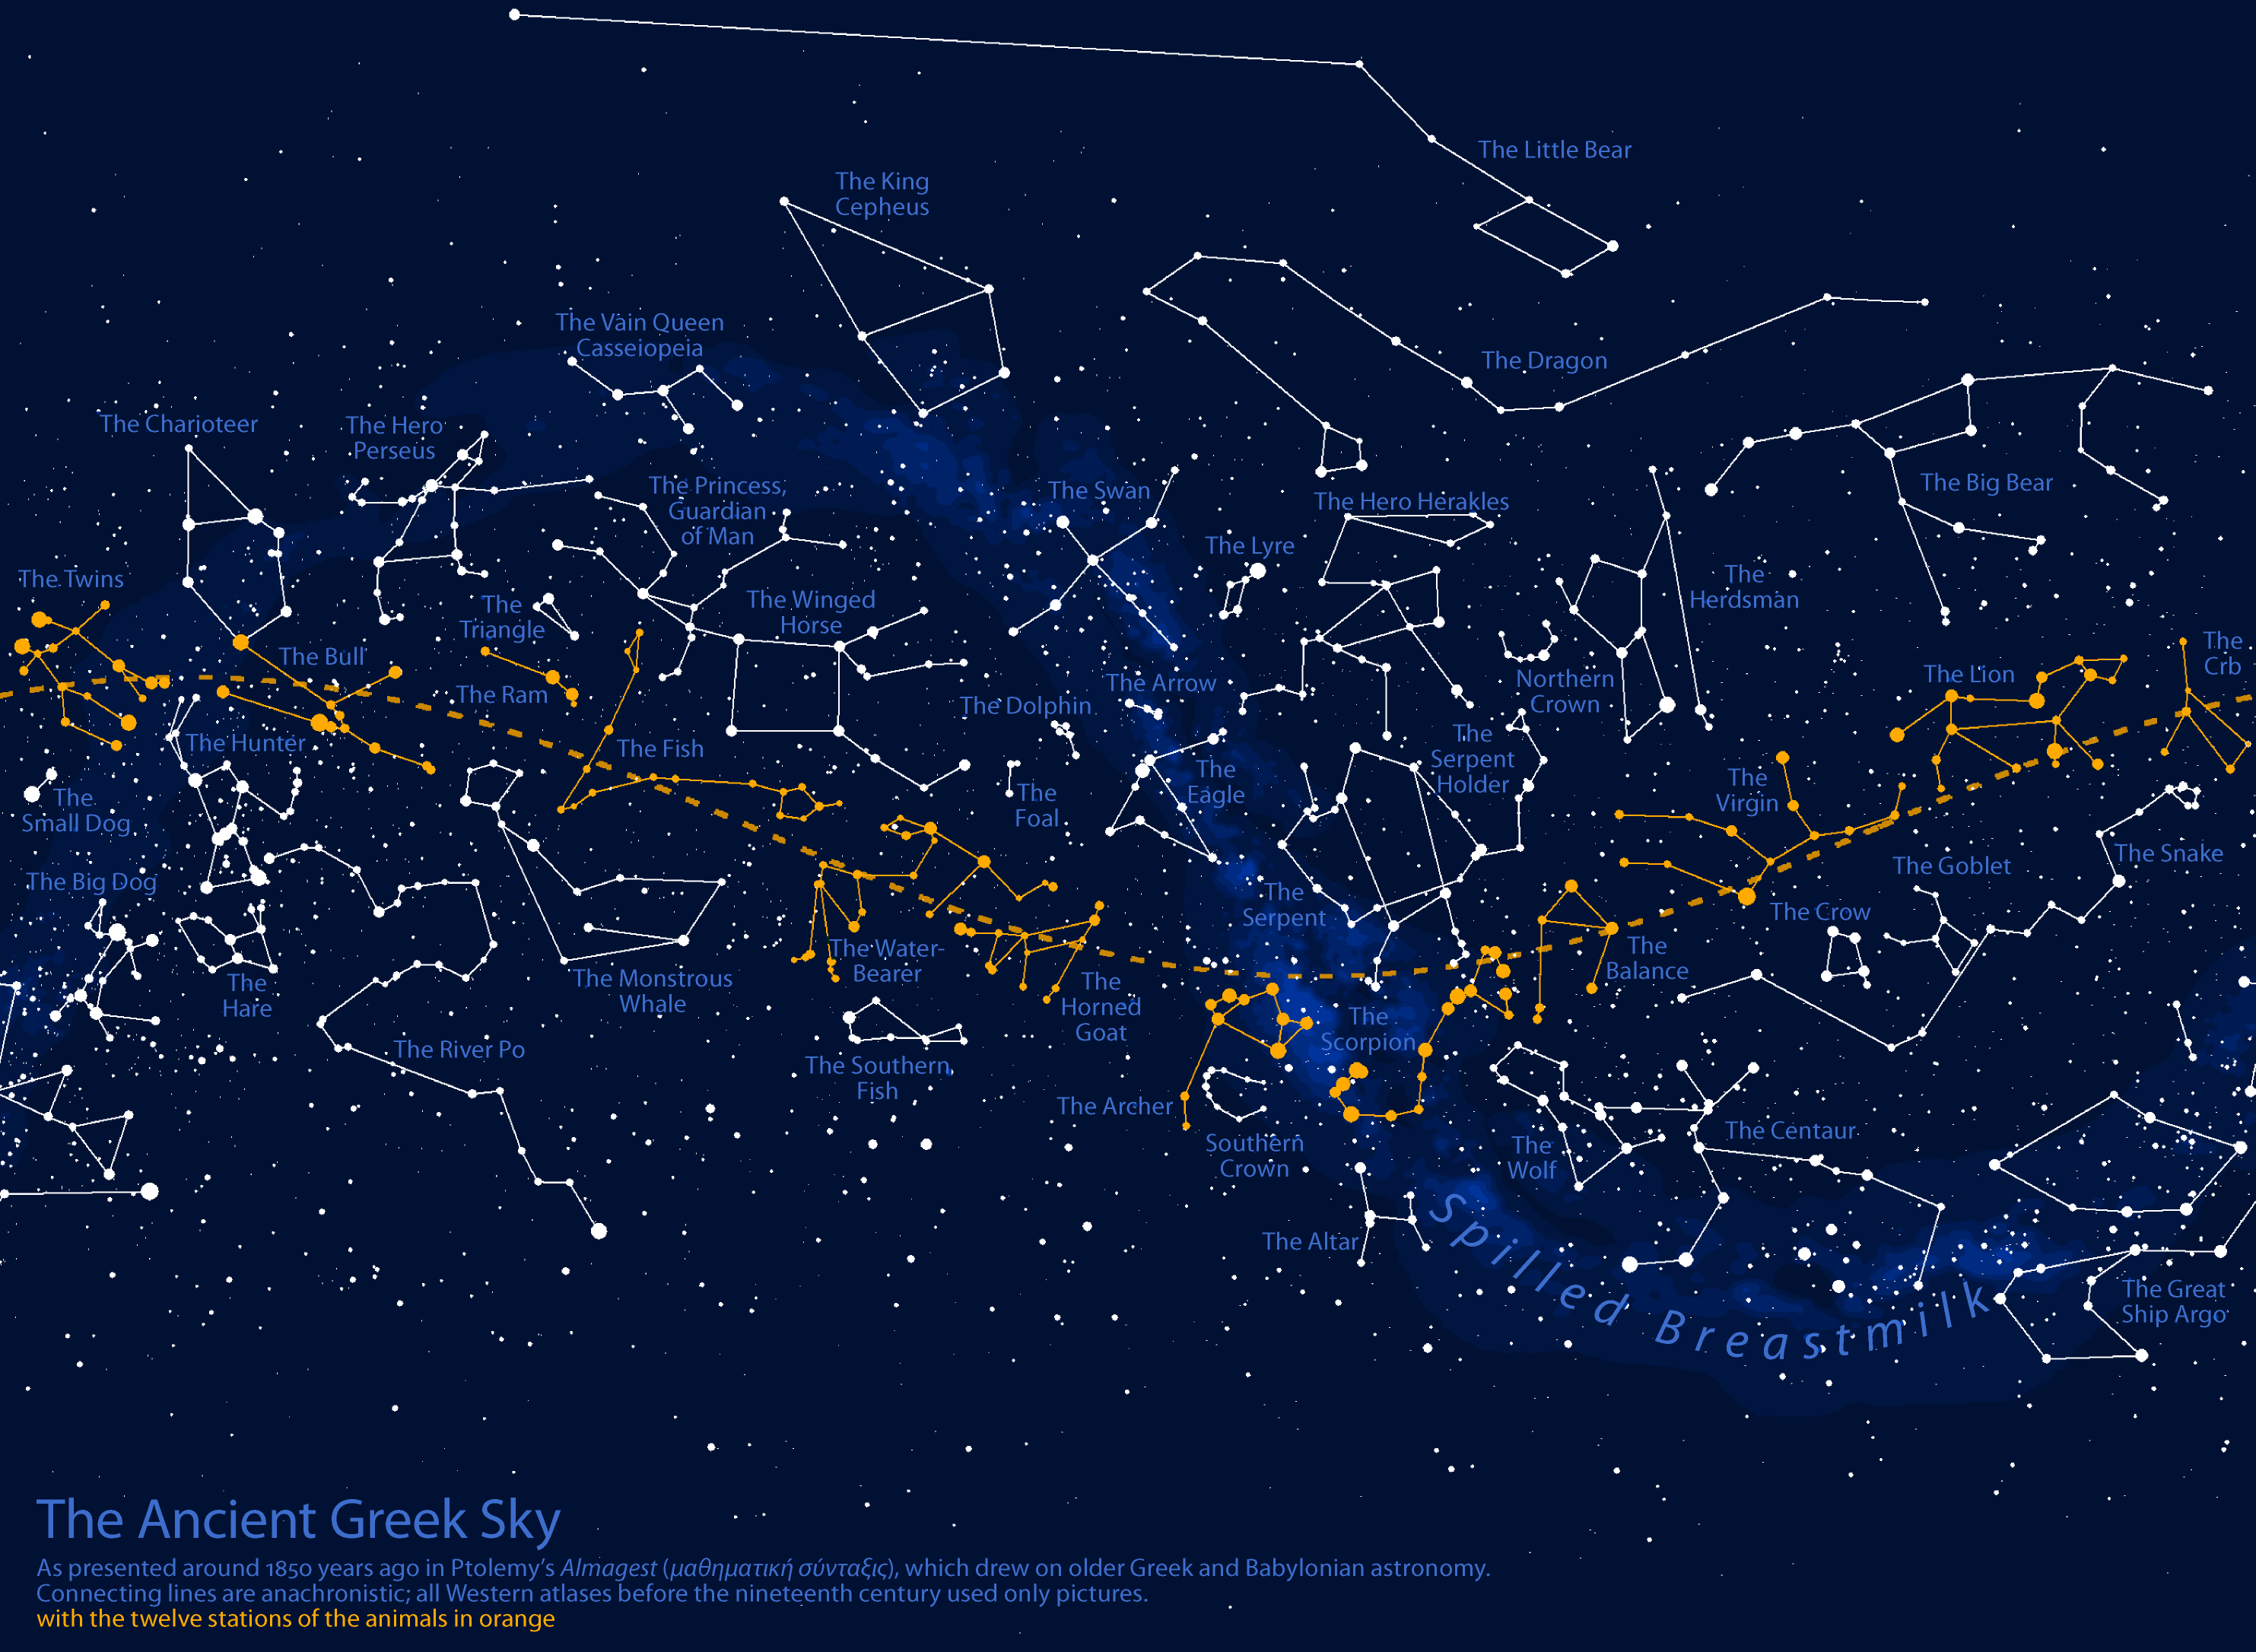 4 the ancient greek sky